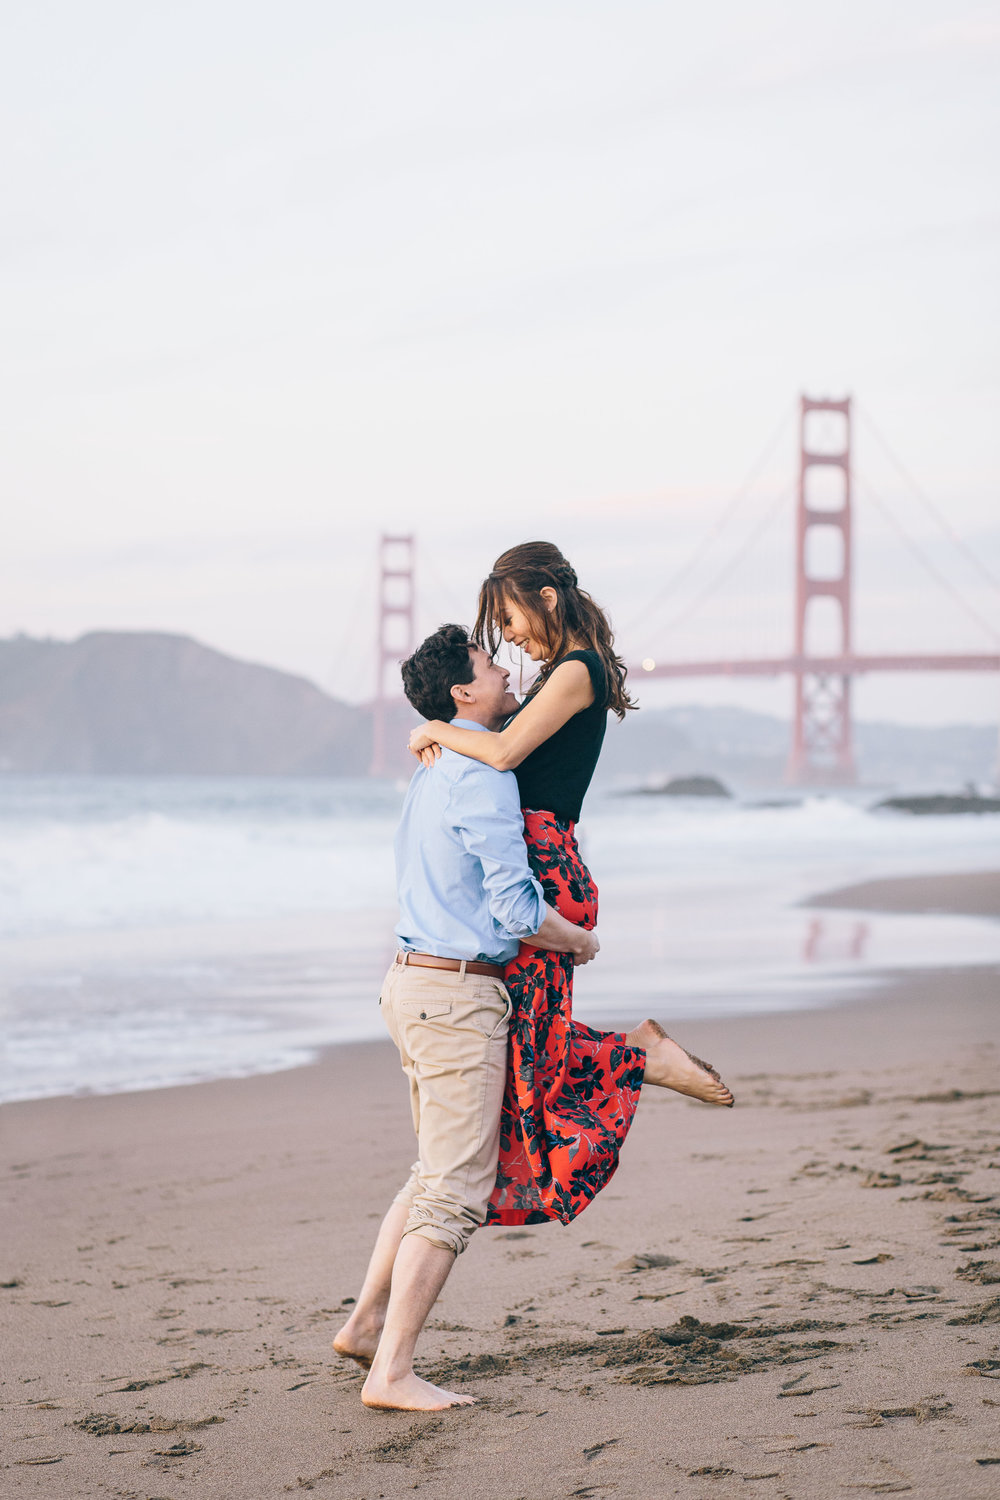 Best Engagement Photo Locations in San Francisco - Baker Beach Engagement Photos by JBJ Pictures (6).jpg